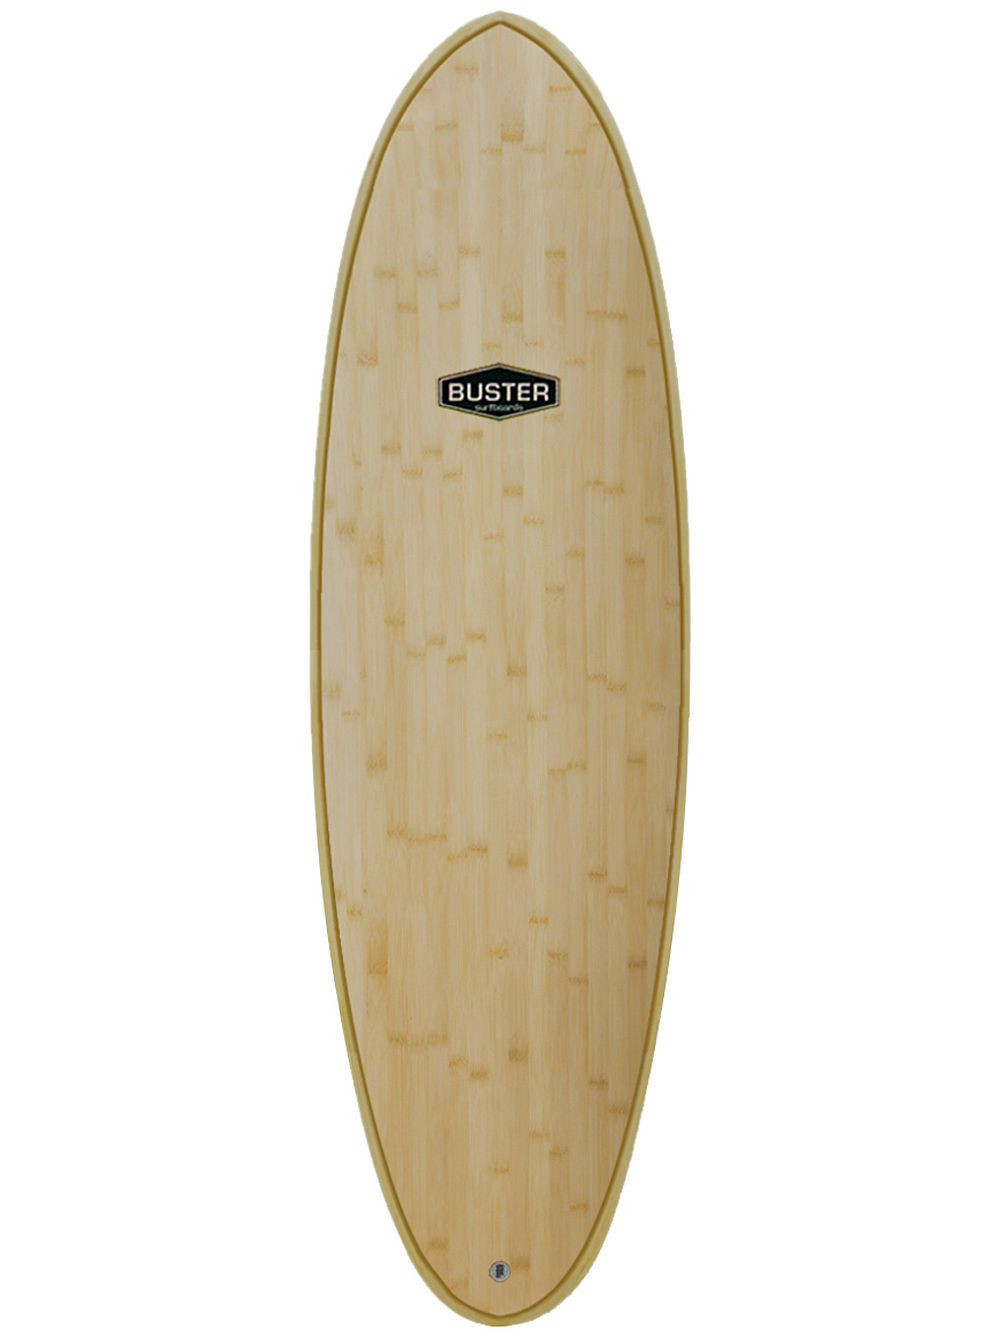 21'' 2''7/8 Blunt Wood Bambus 6.0 Surfboard